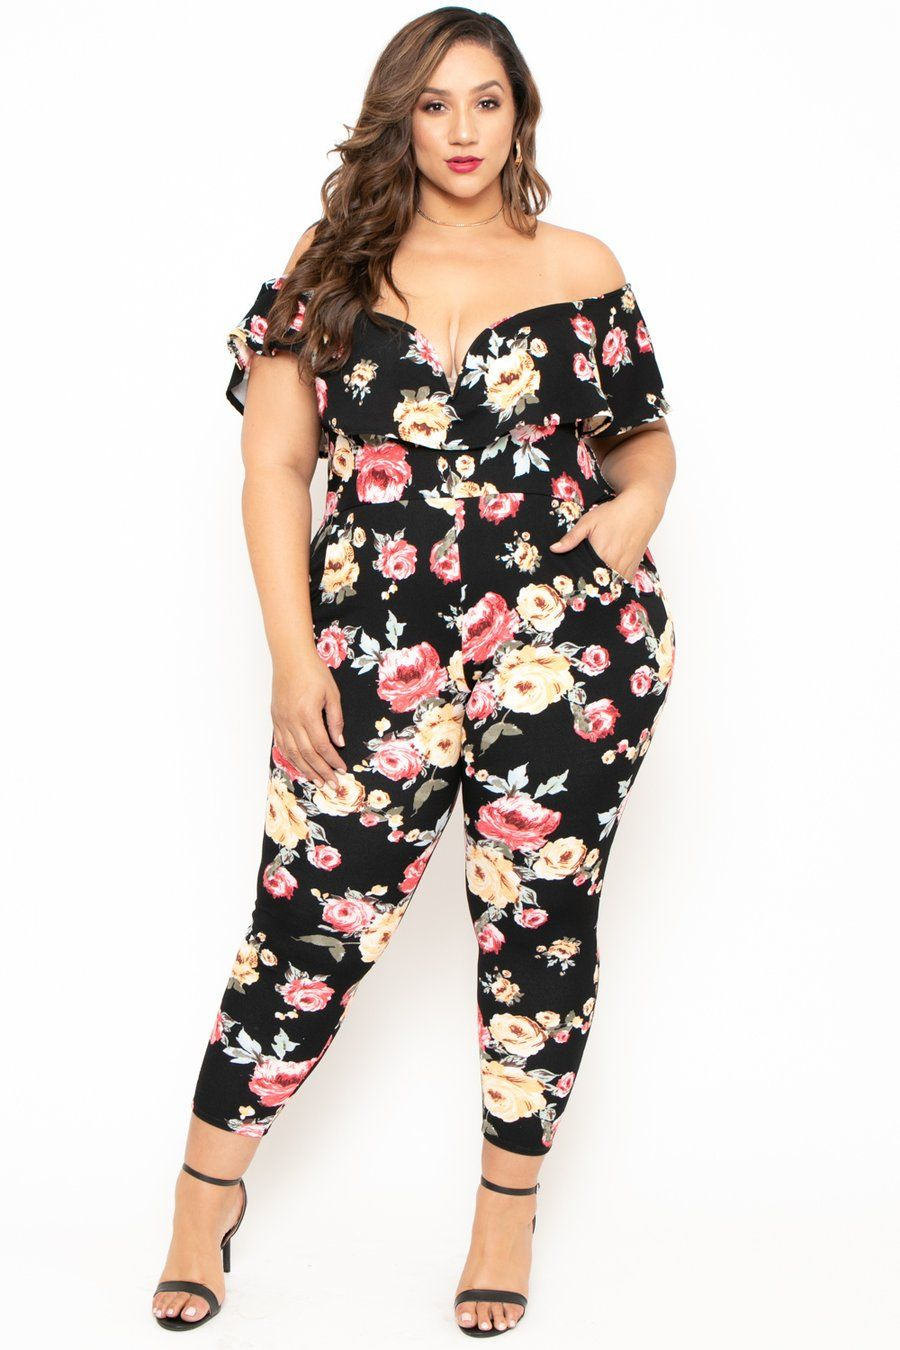 84681912bb8 This plus size